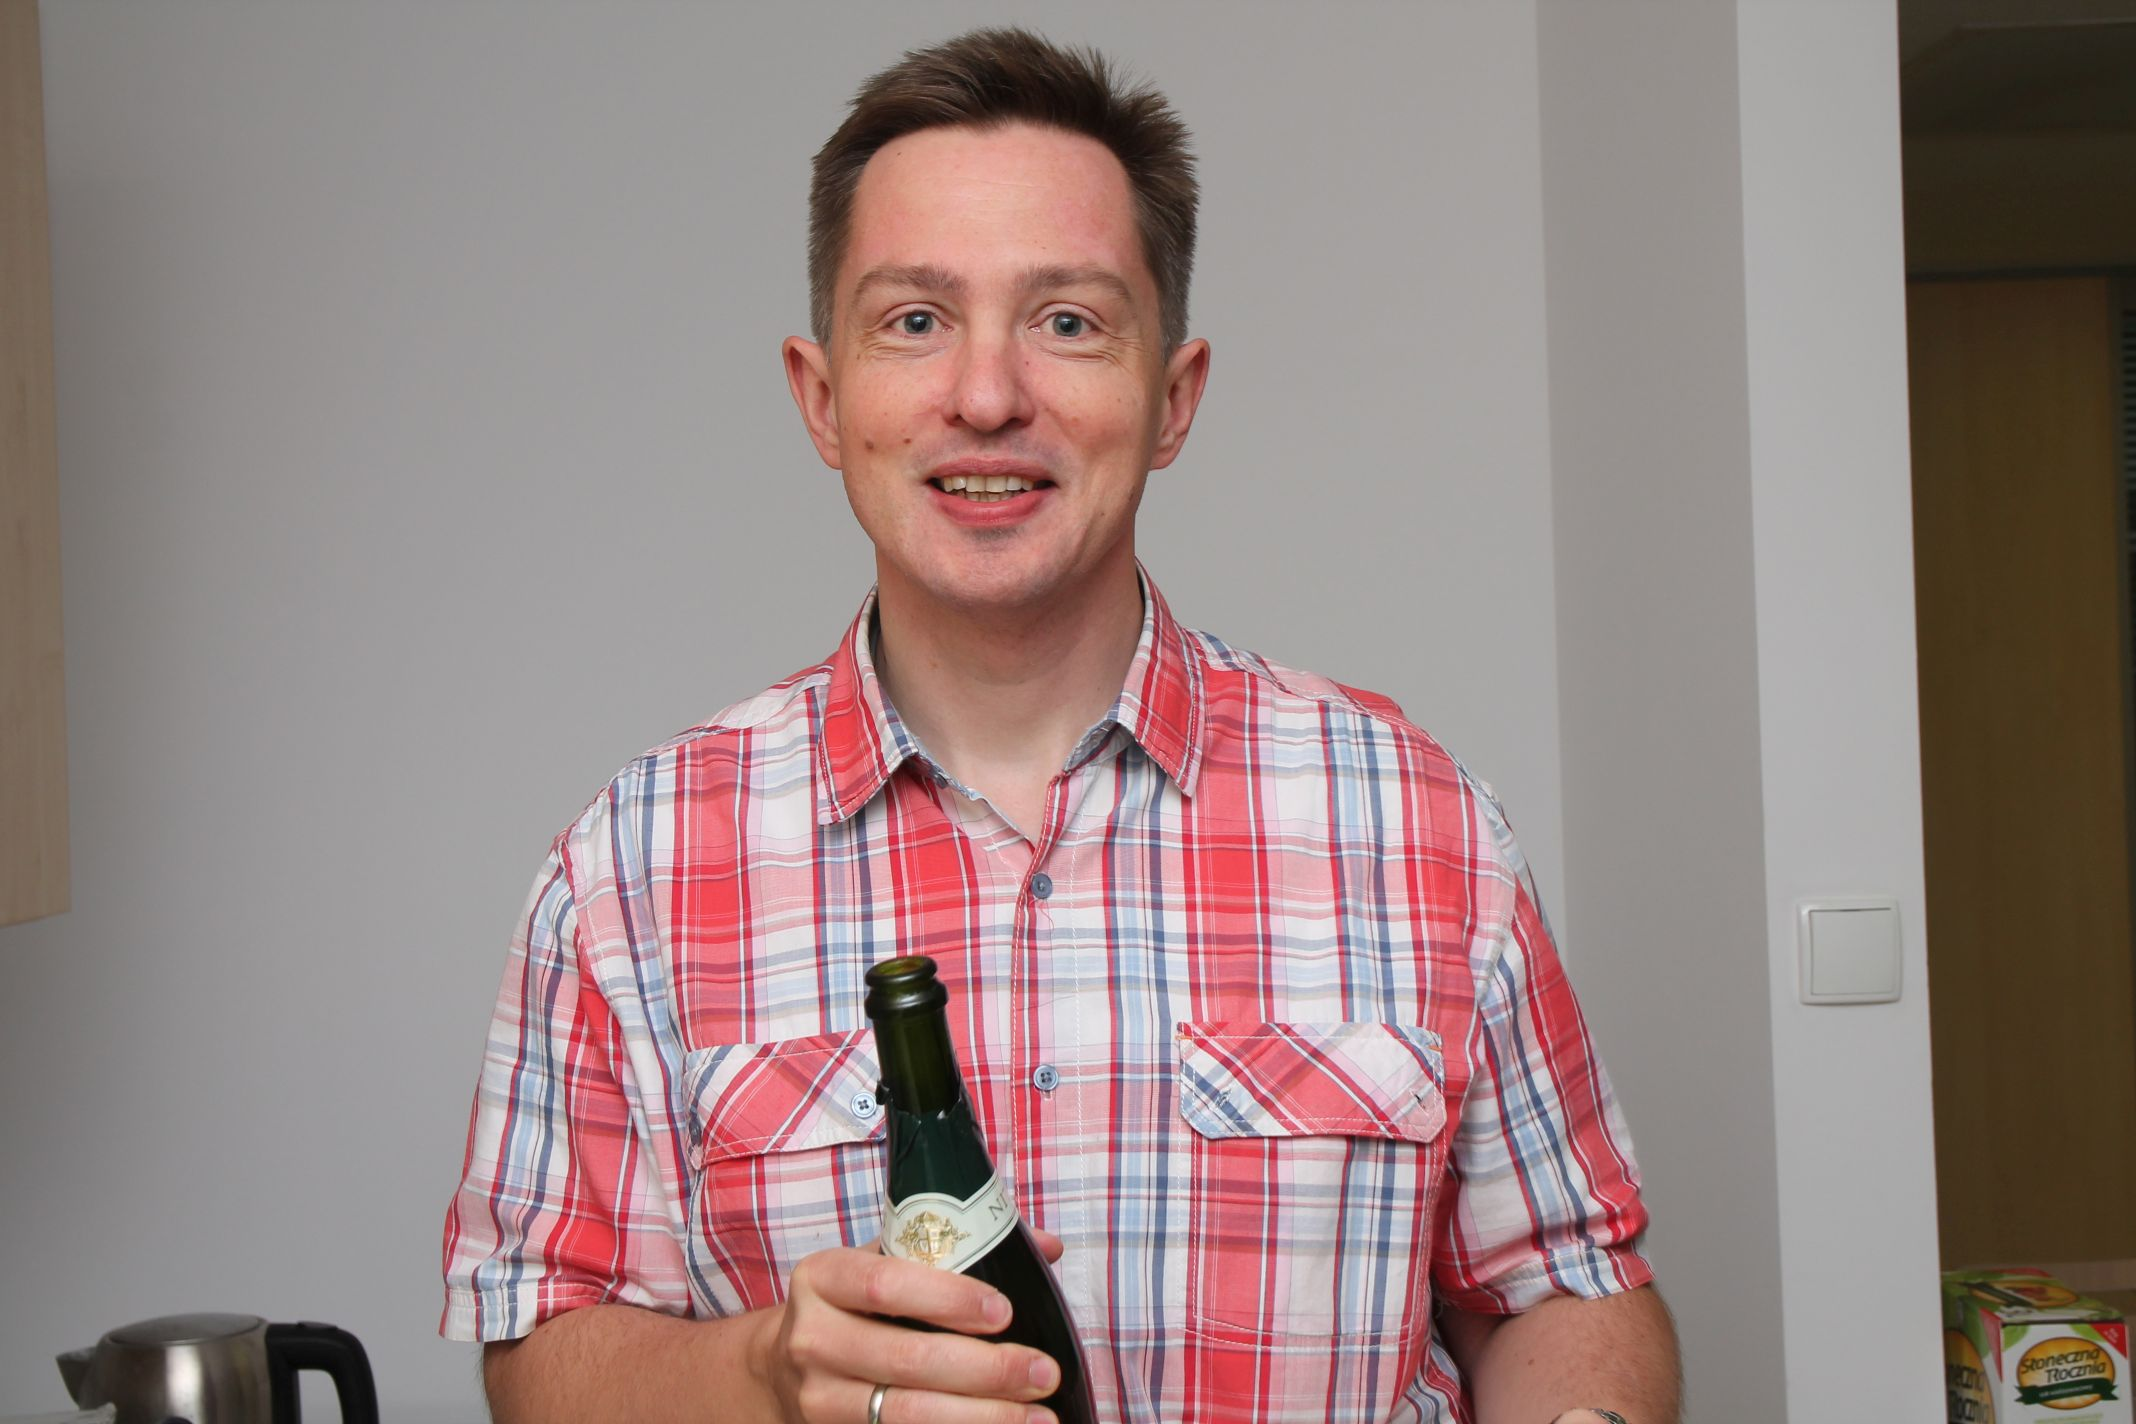 The host with a bottle of bubbly